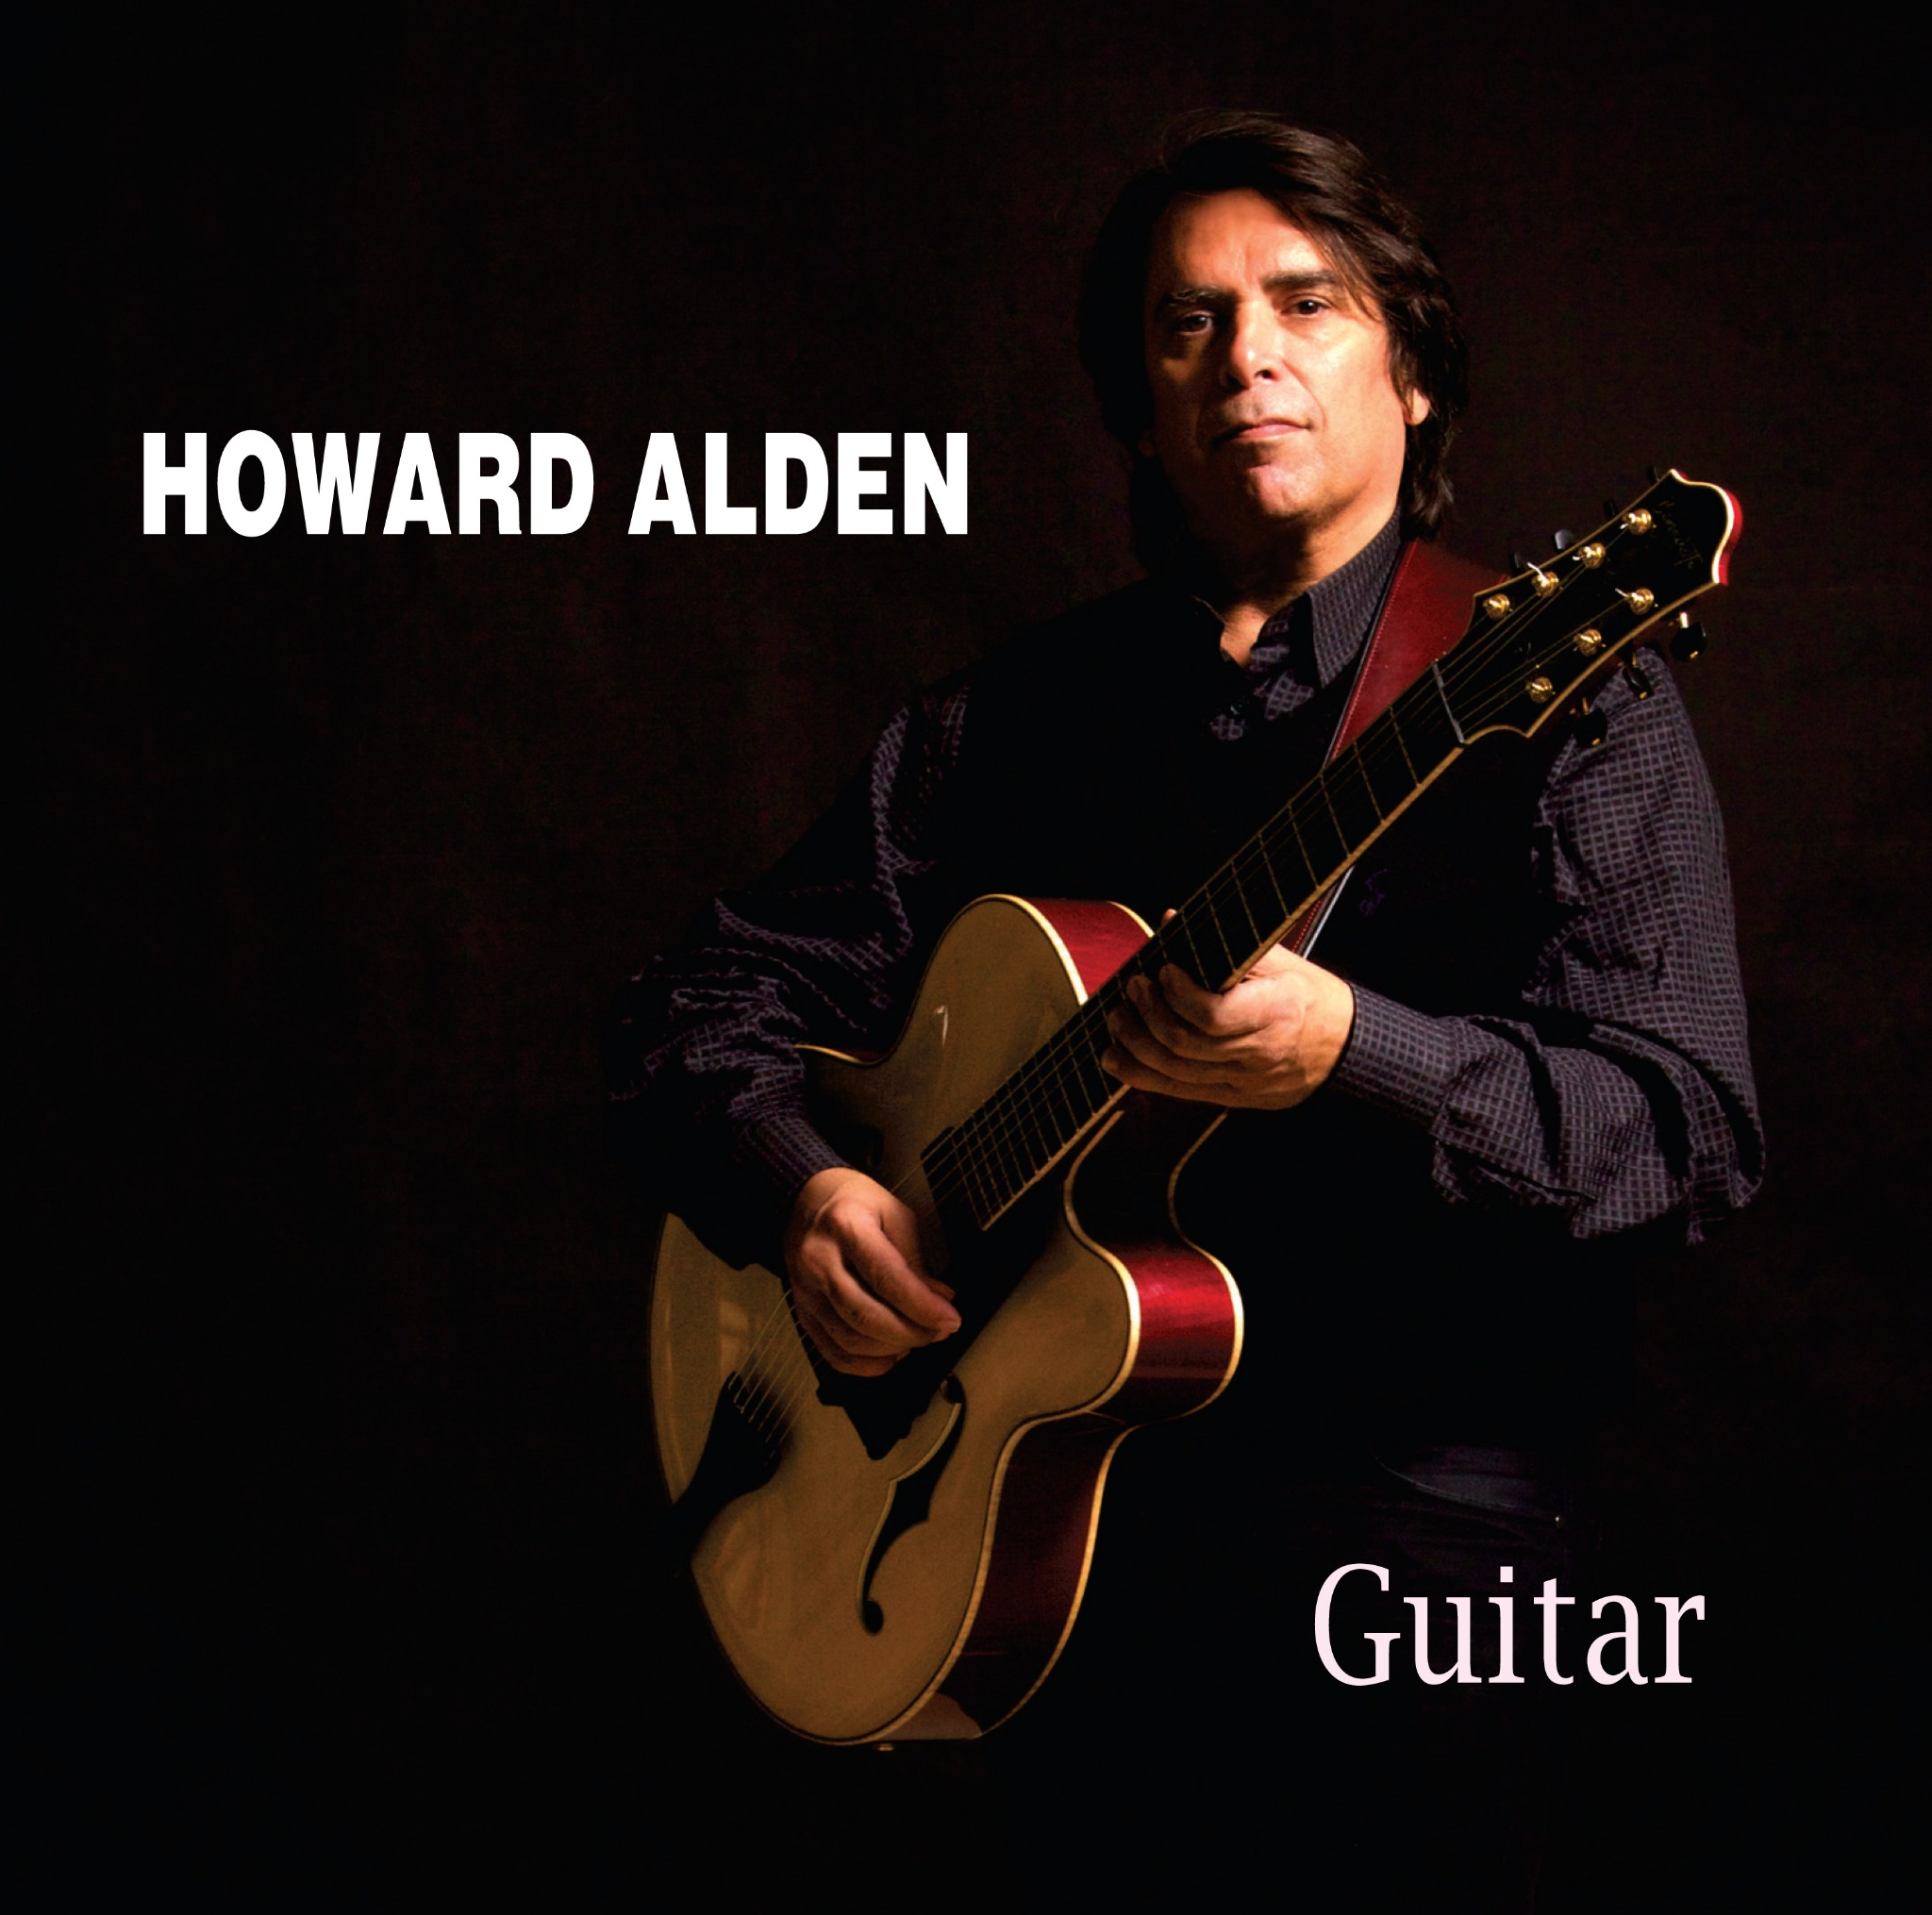 Howard Alden - GUITAR (K2B2 4469).mp3